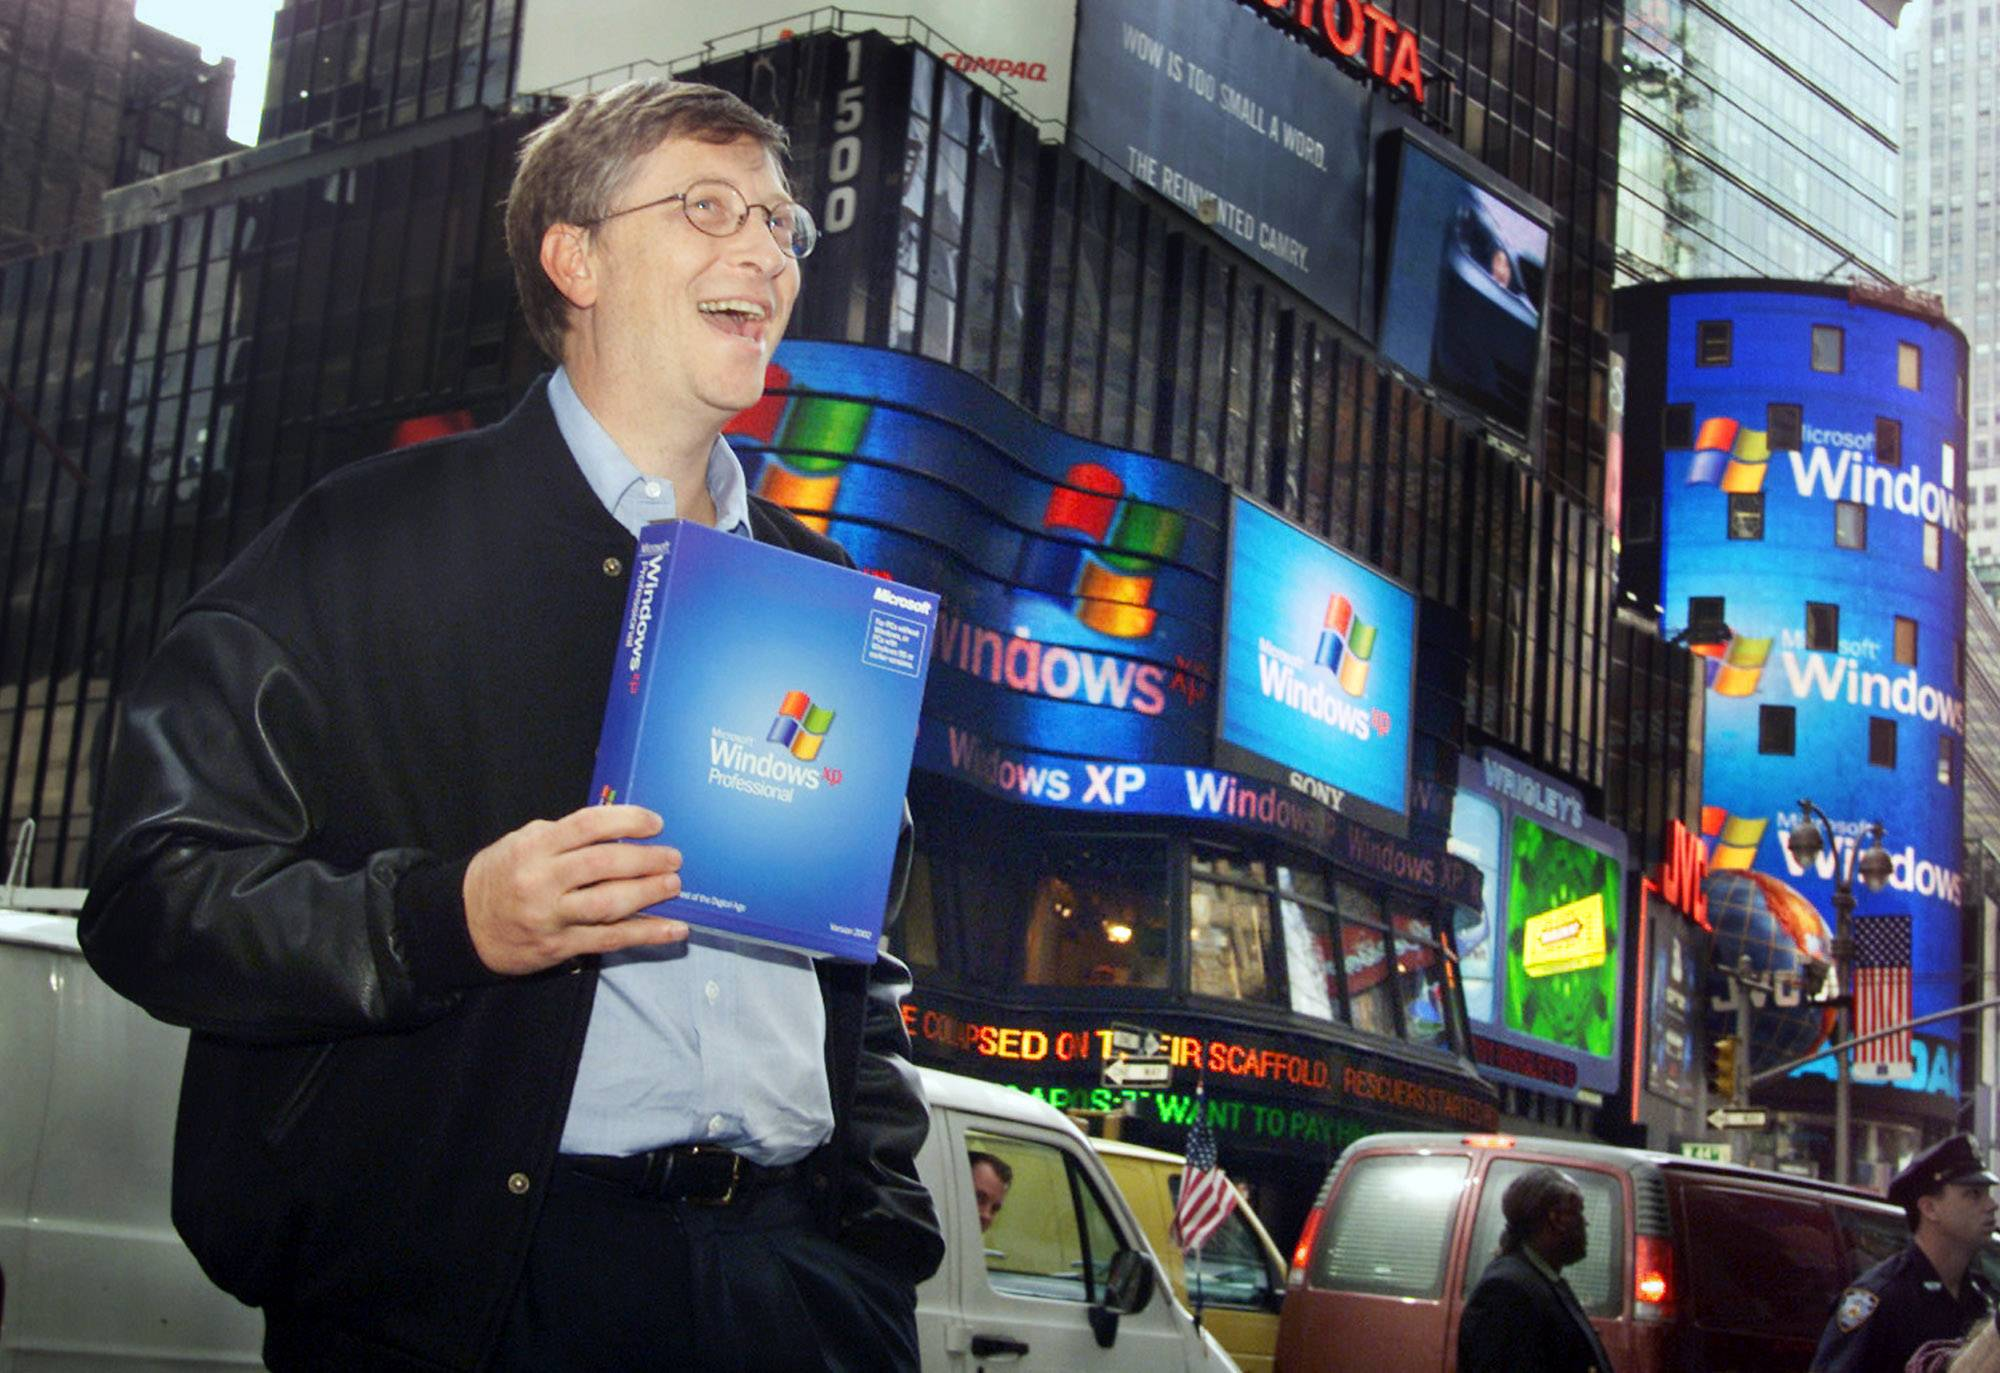 Microsoft chairman Bill Gates stands in New York's Times Square to promote the new Windows XP operating system on Oct. 25, 2001. On Tuesday, Microsoft will end support for its still popular version of Windows — which is still used by an estimated 30 percent of businesses and consumers.